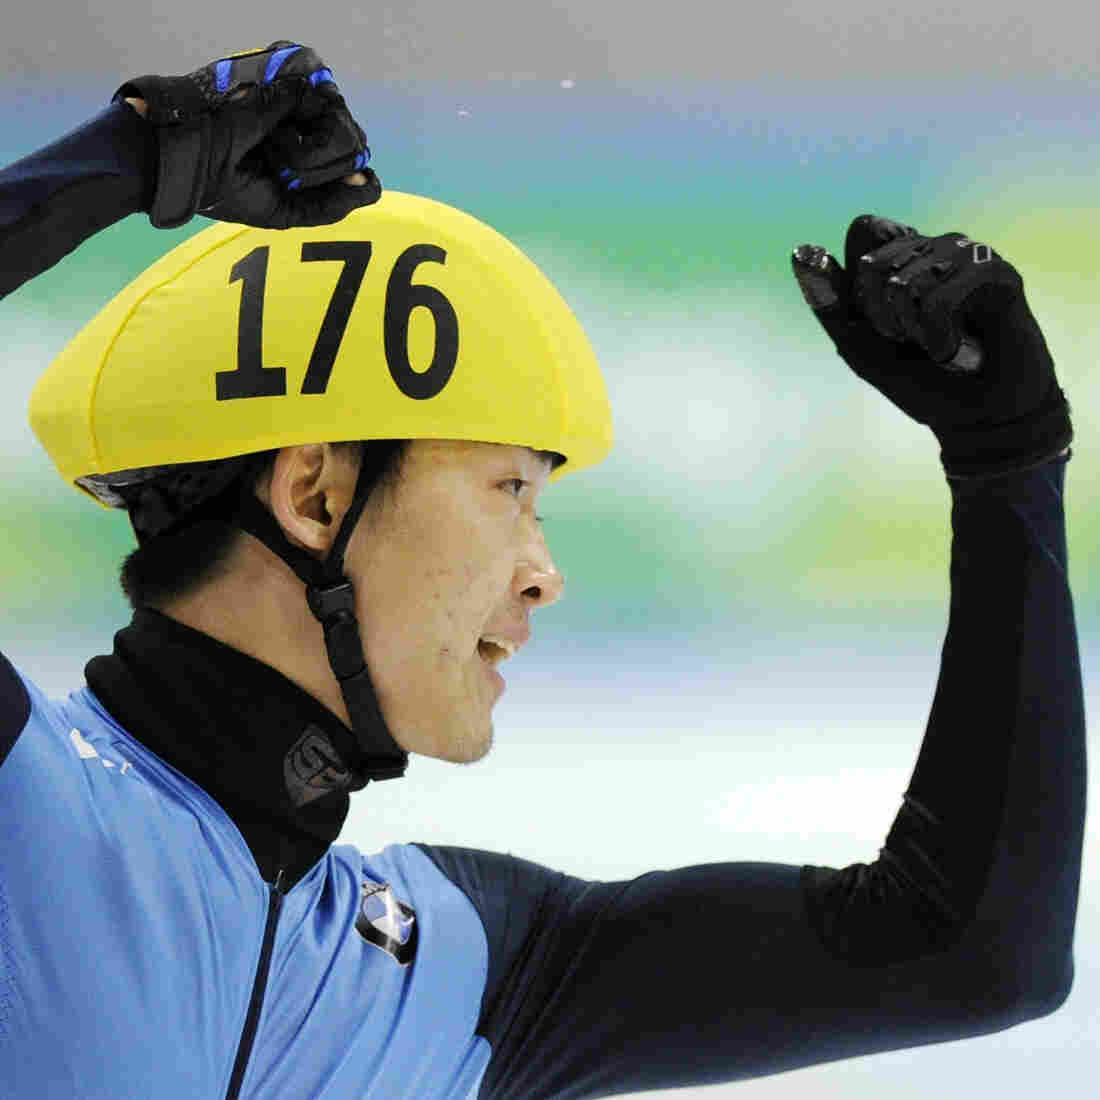 Simon Cho of the U.S. celebrates during the 500 meter men's final race at the Short Track Speed Skating World Cup in Dresden in 2011.